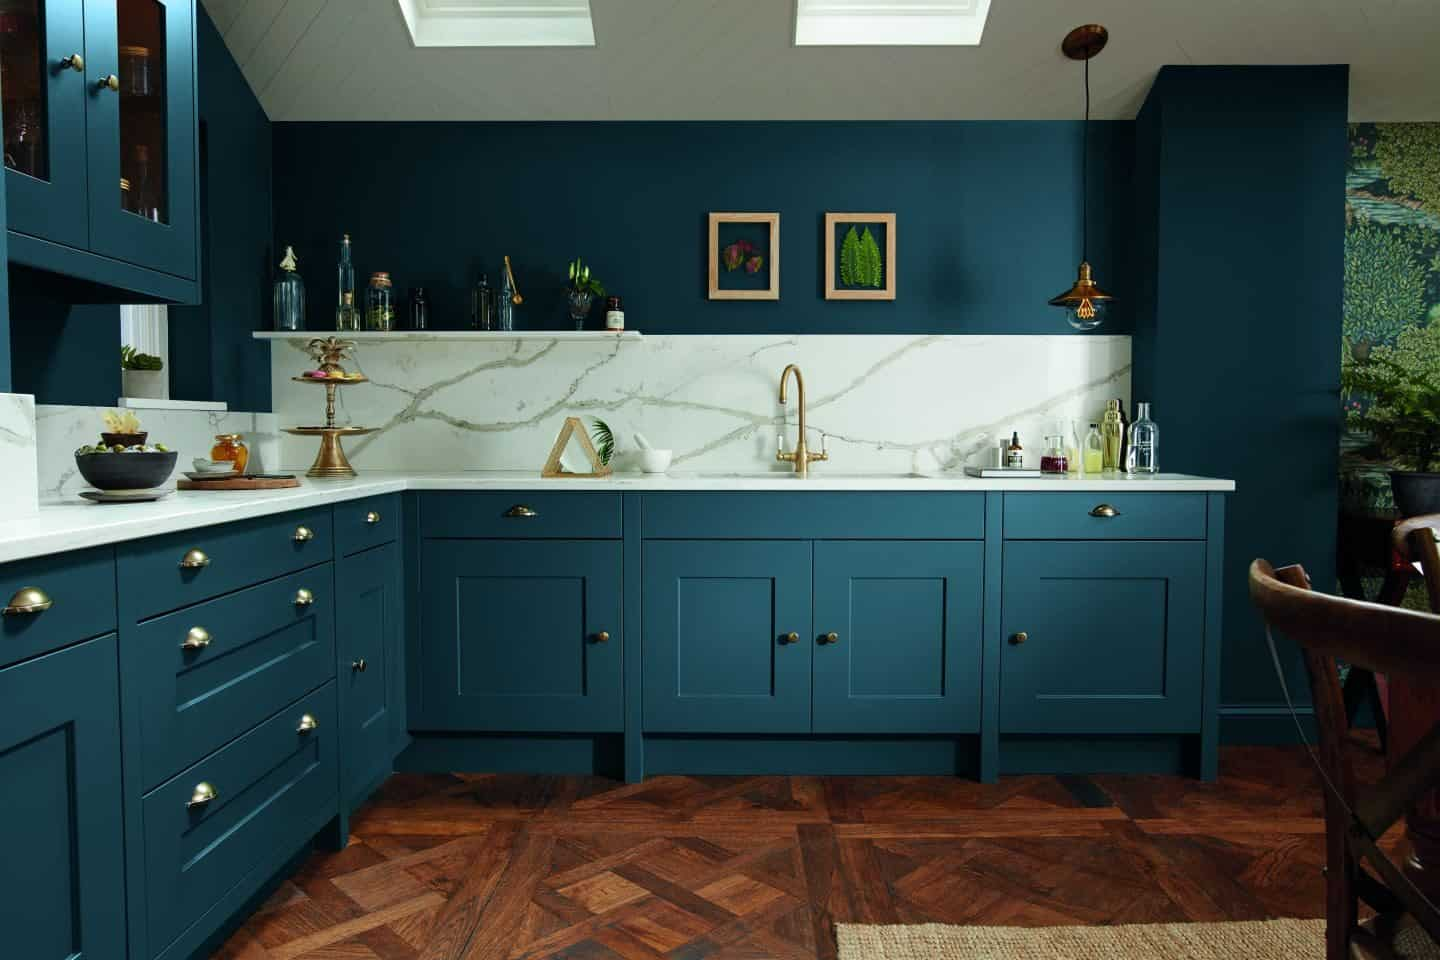 Trend Colourful Kitchen Cabinetry